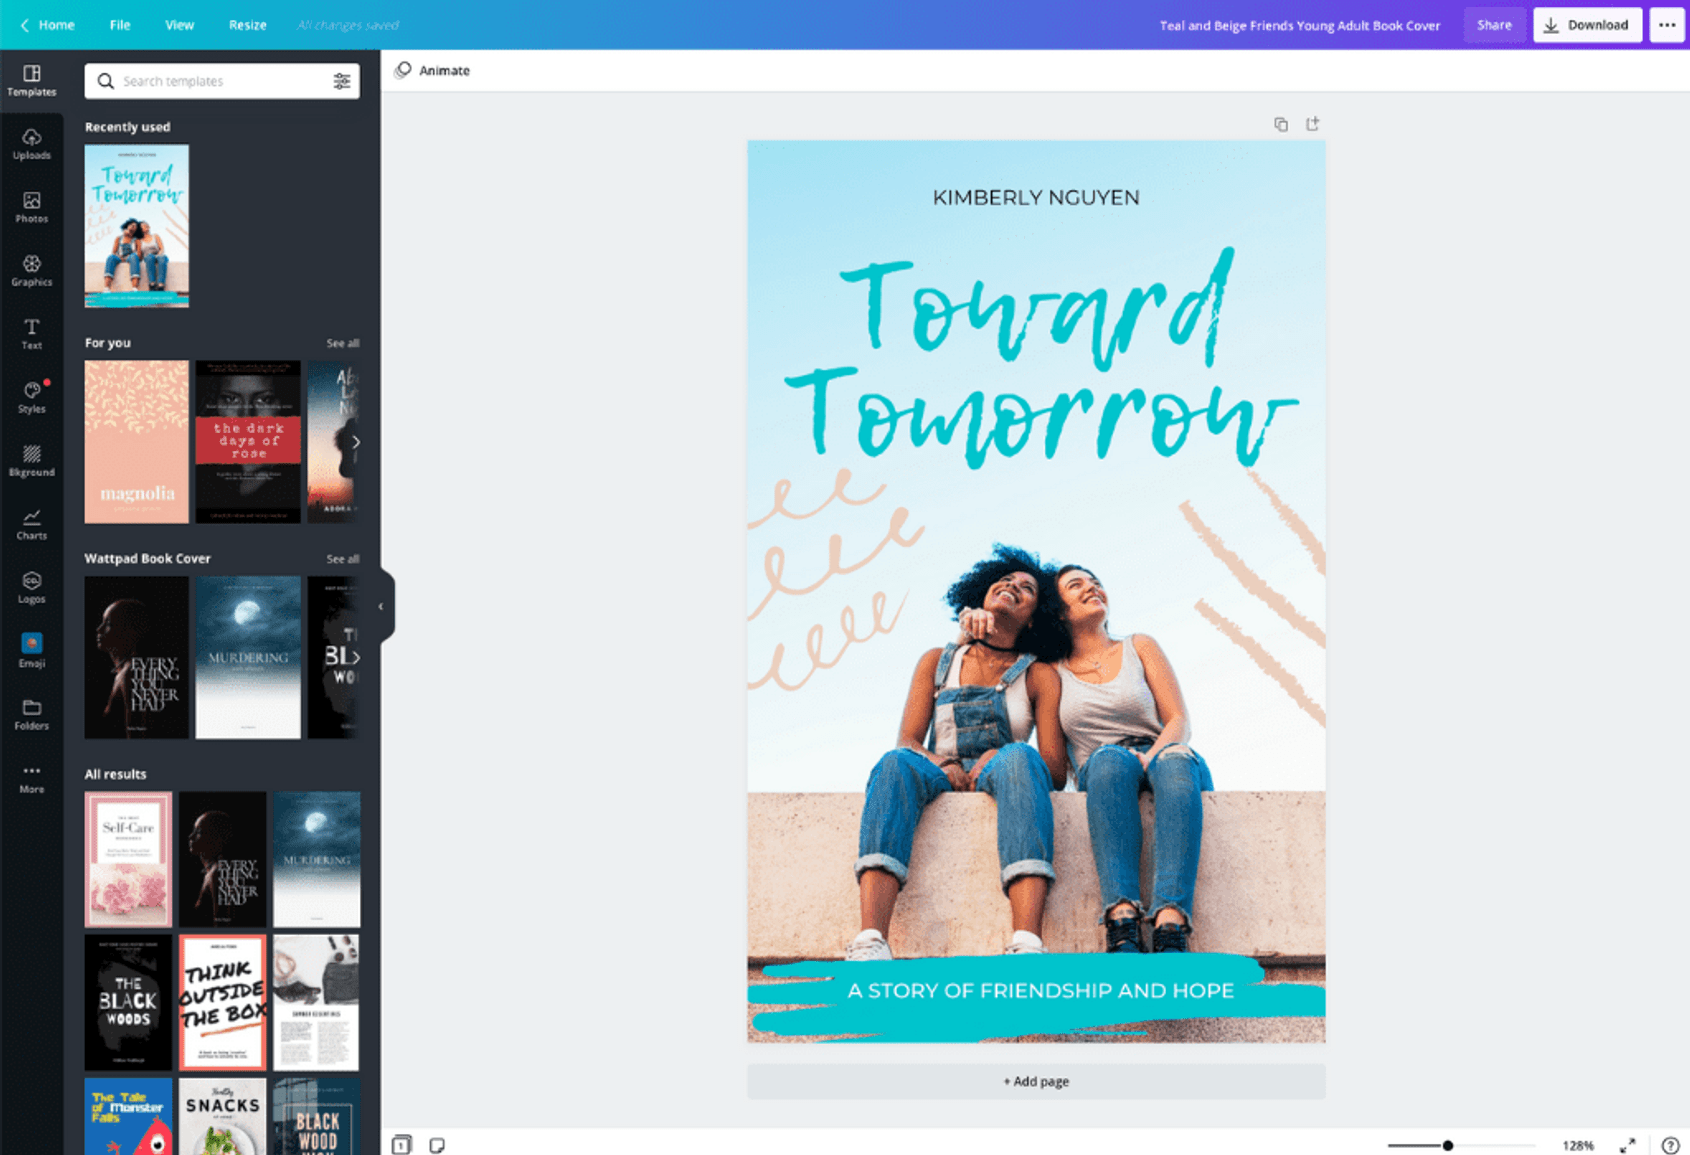 Free Online Wattpad Cover Maker Design Wattpad Covers On Canva Wattpad connects a global community of millions of readers and writers through the power of story. free online wattpad cover maker design